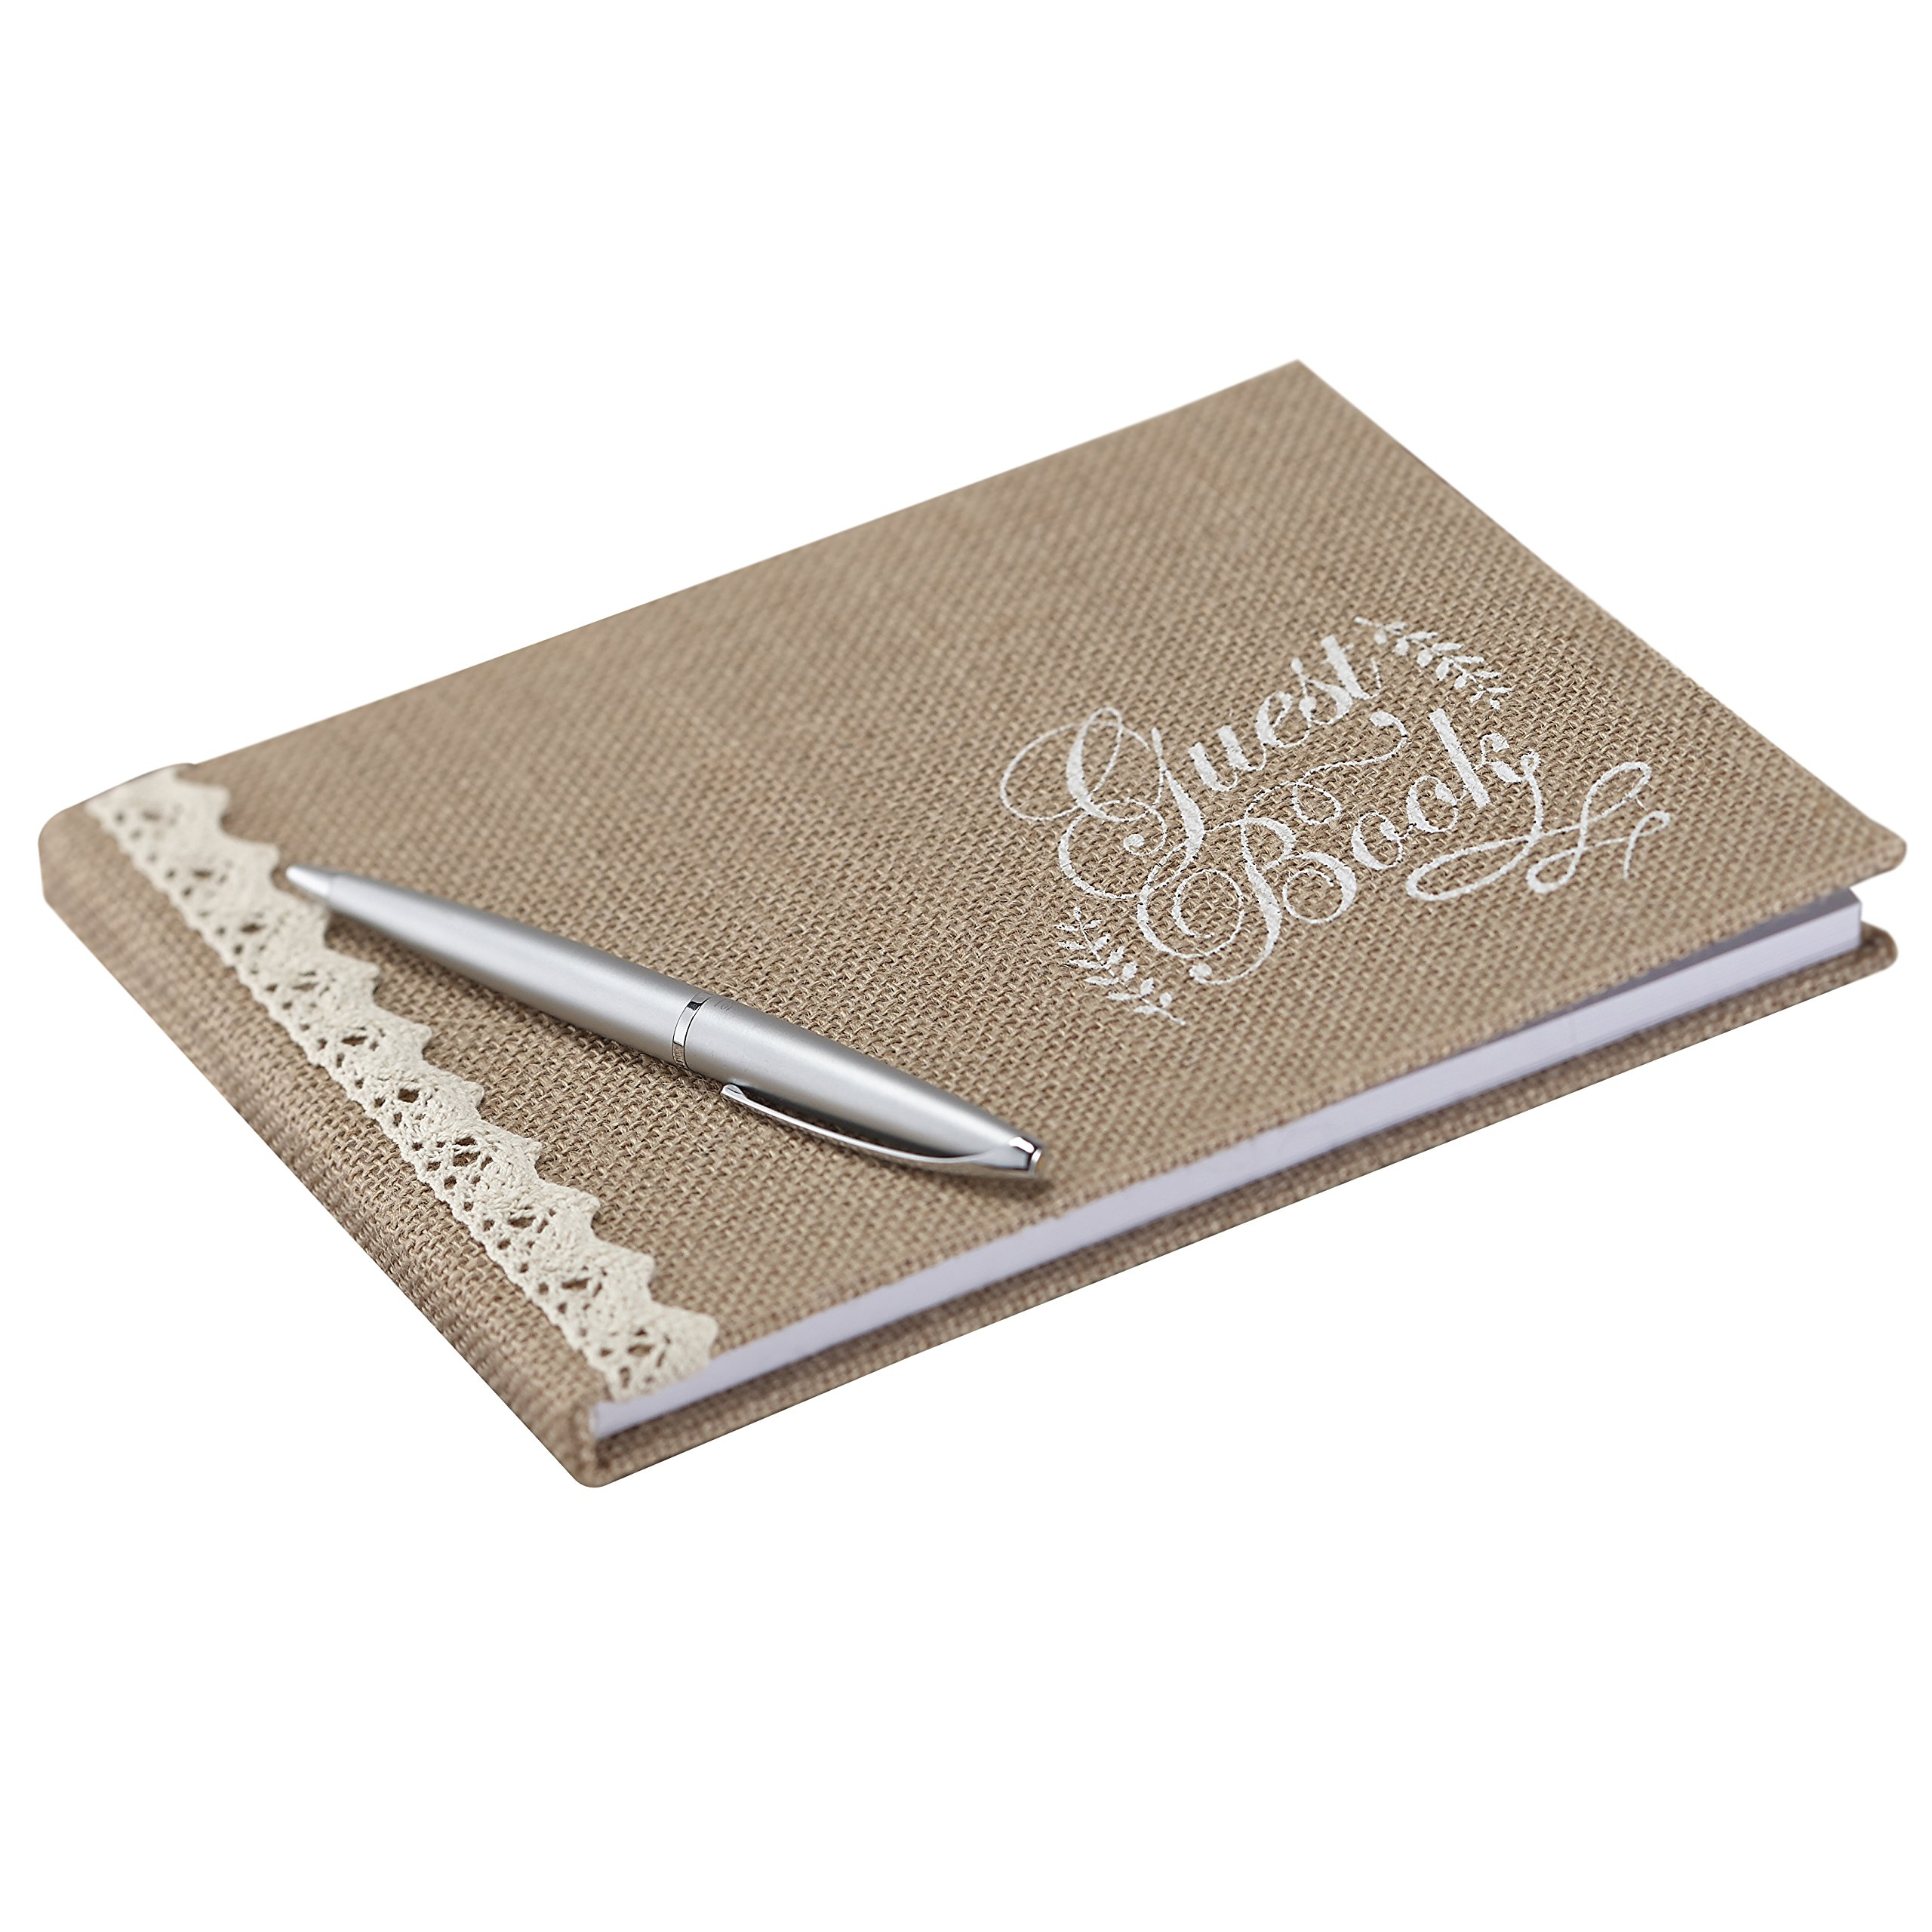 Ginger Ray Vintage Affair Hessian Burlap Wedding Guest Book, Brown